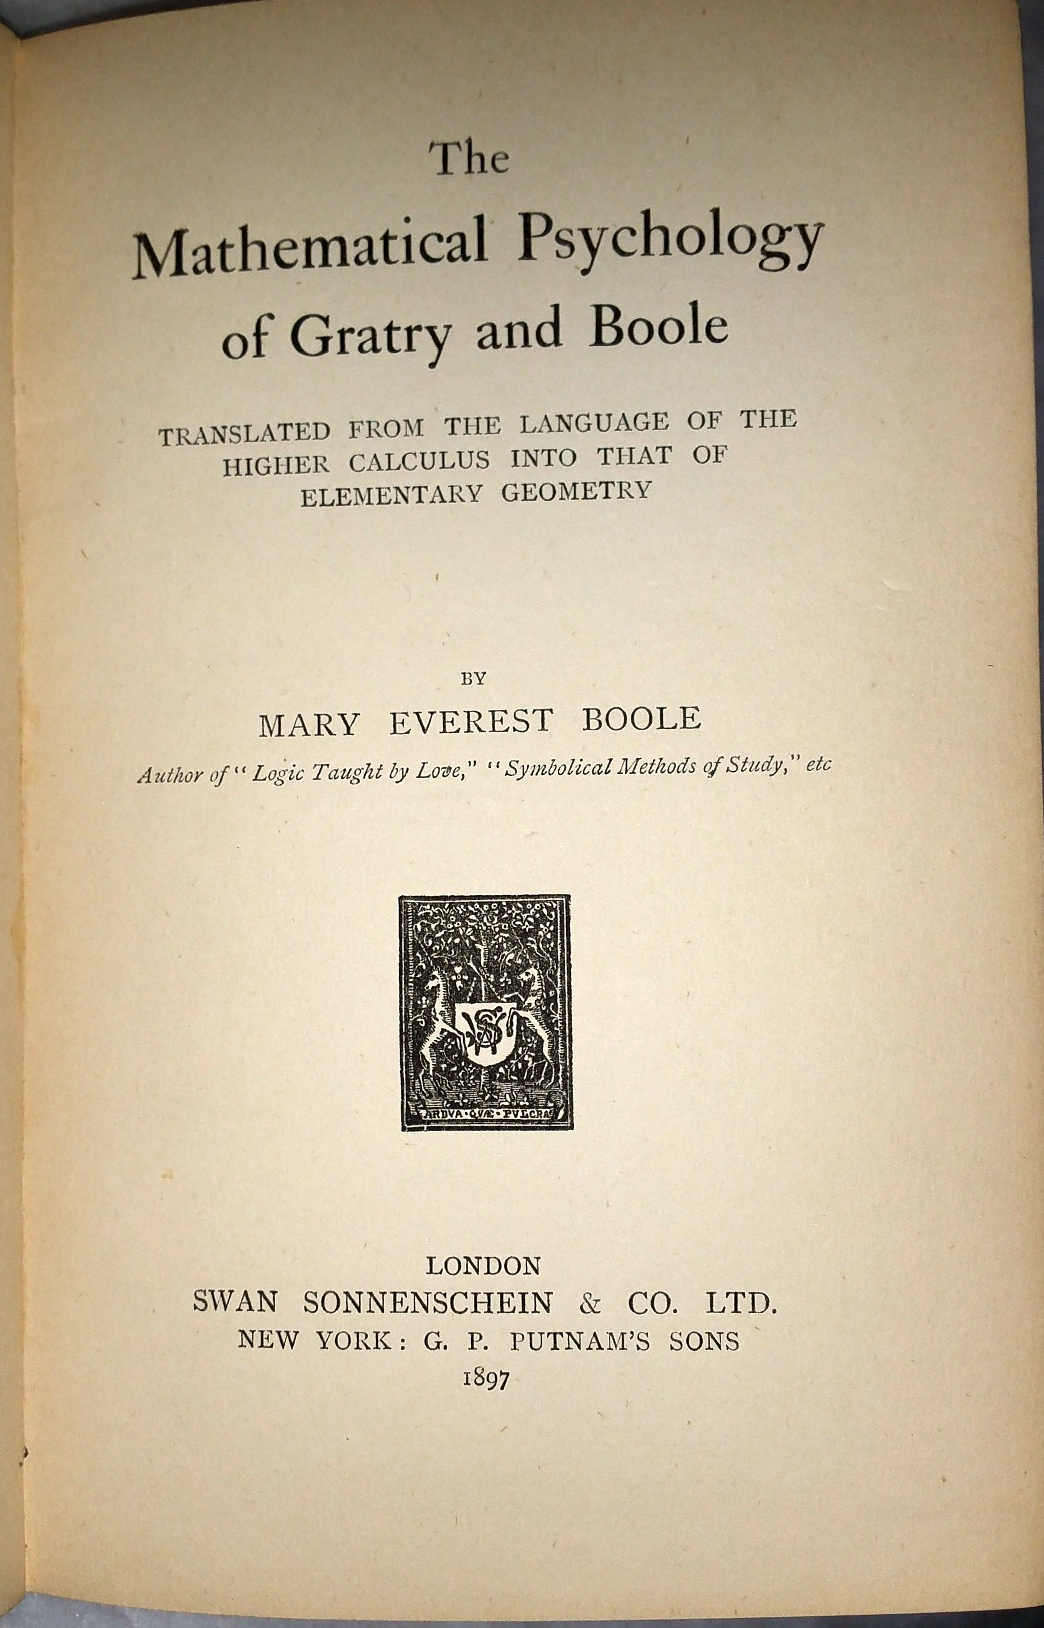 Image for The Mathematical Psychology of Gratry and Boole: Translated from the Language of the Higher Calculus Into that of Elementary Geometry